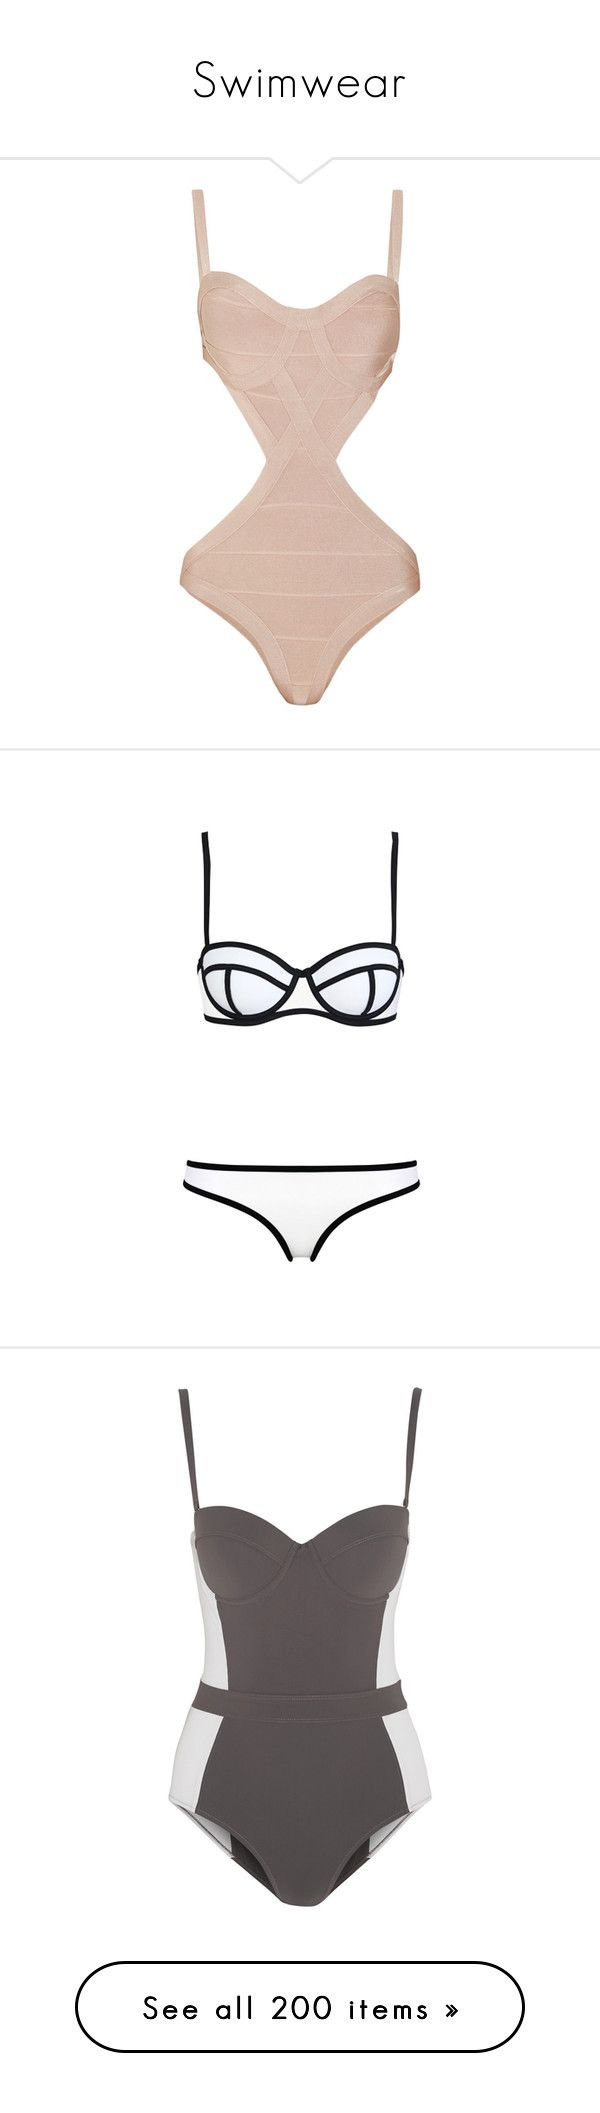 """Swimwear"" by darlingchick ❤ liked on Polyvore featuring swimwear, one-piece swimsuits, swimsuits, bikini, swim, bathing suits, beige, swim suits, cut out bikini and swimsuits bikinis"